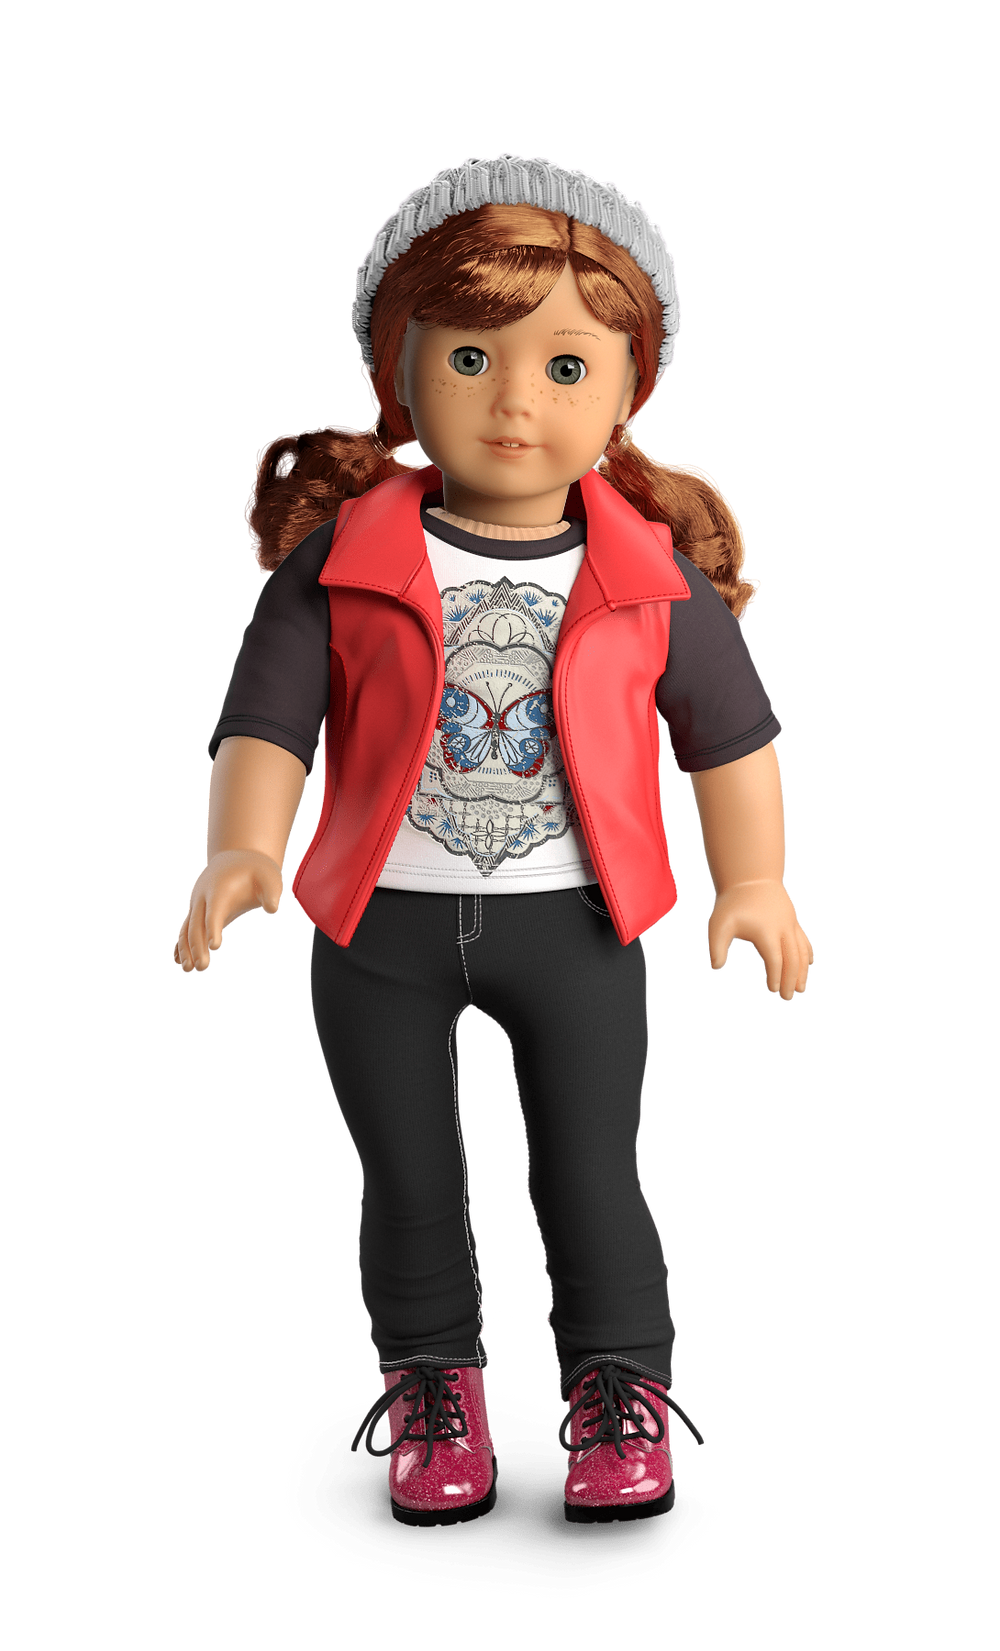 American Girl Doll, GOTY 2019, Girl of the Year 2019, Blaire Wilson, American Girl Blaire, American Girl Doll Blaire, American Girl Blaire WilsonAmerican Girl Doll, GOTY 2019, Girl of the Year 2019, Blaire Wilson, American Girl Blaire, American Girl Doll Blaire, American Girl Blaire WilsonAmerican Girl Doll, GOTY 2019, Girl of the Year 2019, Blaire Wilson, American Girl Blaire, American Girl Doll Blaire, American Girl Blaire WilsonAmerican Girl Doll, GOTY 2019, Girl of the Year 2019, Blaire Wilson, American Girl Blaire, American Girl Doll Blaire, American Girl Blaire WilsonAmerican Girl Doll, GOTY 2019, Girl of the Year 2019, Blaire Wilson, American Girl Blaire, American Girl Doll Blaire, American Girl Blaire WilsonAmerican Girl Doll, GOTY 2019, Girl of the Year 2019, Blaire Wilson, American Girl Blaire, American Girl Doll Blaire, American Girl Blaire WilsonAmerican Girl Doll, GOTY 2019, Girl of the Year 2019, Blaire Wilson, American Girl Blaire, American Girl Doll Blaire, American Girl Blaire WilsonAmerican Girl Doll, GOTY 2019, Girl of the Year 2019, Blaire Wilson, American Girl Blaire, American Girl Doll Blaire, American Girl Blaire WilsonAmerican Girl Doll, GOTY 2019, Girl of the Year 2019, Blaire Wilson, American Girl Blaire, American Girl Doll Blaire, American Girl Blaire WilsonAmerican Girl Doll, GOTY 2019, Girl of the Year 2019, Blaire Wilson, American Girl Blaire, American Girl Doll Blaire, American Girl Blaire WilsonAmerican Girl Doll, GOTY 2019, Girl of the Year 2019, Blaire Wilson, American Girl Blaire, American Girl Doll Blaire, American Girl Blaire WilsonAmerican Girl Doll, GOTY 2019, Girl of the Year 2019, Blaire Wilson, American Girl Blaire, American Girl Doll Blaire, American Girl Blaire WilsonAmerican Girl Doll, GOTY 2019, Girl of the Year 2019, Blaire Wilson, American Girl Blaire, American Girl Doll Blaire, American Girl Blaire WilsonAmerican Girl Doll, GOTY 2019, Girl of the Year 2019, Blaire Wilson, American Girl Blaire, American Girl Doll Blaire, American Girl Blaire WilsonAmerican Girl Doll, GOTY 2019, Girl of the Year 2019, Blaire Wilson, American Girl Blaire, American Girl Doll Blaire, American Girl Blaire WilsonAmerican Girl Doll, GOTY 2019, Girl of the Year 2019, Blaire Wilson, American Girl Blaire, American Girl Doll Blaire, American Girl Blaire WilsonAmerican Girl Doll, GOTY 2019, Girl of the Year 2019, Blaire Wilson, American Girl Blaire, American Girl Doll Blaire, American Girl Blaire WilsonAmerican Girl Doll, GOTY 2019, Girl of the Year 2019, Blaire Wilson, American Girl Blaire, American Girl Doll Blaire, American Girl Blaire WilsonAmerican Girl Doll, GOTY 2019, Girl of the Year 2019, Blaire Wilson, American Girl Blaire, American Girl Doll Blaire, American Girl Blaire WilsonAmerican Girl Doll, GOTY 2019, Girl of the Year 2019, Blaire Wilson, American Girl Blaire, American Girl Doll Blaire, American Girl Blaire WilsonAmerican Girl Doll, GOTY 2019, Girl of the Year 2019, Blaire Wilson, American Girl Blaire, American Girl Doll Blaire, American Girl Blaire WilsonAmerican Girl Doll, GOTY 2019, Girl of the Year 2019, Blaire Wilson, American Girl Blaire, American Girl Doll Blaire, American Girl Blaire WilsonAmerican Girl Doll, GOTY 2019, Girl of the Year 2019, Blaire Wilson, American Girl Blaire, American Girl Doll Blaire, American Girl Blaire WilsonAmerican Girl Doll, GOTY 2019, Girl of the Year 2019, Blaire Wilson, American Girl Blaire, American Girl Doll Blaire, American Girl Blaire WilsonAmerican Girl Doll, GOTY 2019, Girl of the Year 2019, Blaire Wilson, American Girl Blaire, American Girl Doll Blaire, American Girl Blaire WilsonAmerican Girl Doll, GOTY 2019, Girl of the Year 2019, Blaire Wilson, American Girl Blaire, American Girl Doll Blaire, American Girl Blaire WilsonAmerican Girl Doll, GOTY 2019, Girl of the Year 2019, Blaire Wilson, American Girl Blaire, American Girl Doll Blaire, American Girl Blaire WilsonAmerican Girl Doll, GOTY 2019, Girl of the Year 2019, Blaire Wilson, American Girl Blaire, American Girl Doll Blaire, American Girl Blaire WilsonAmerican Girl Doll, GOTY 2019, Girl of the Year 2019, Blaire Wilson, American Girl Blaire, American Girl Doll Blaire, American Girl Blaire WilsonAmerican Girl Doll, GOTY 2019, Girl of the Year 2019, Blaire Wilson, American Girl Blaire, American Girl Doll Blaire, American Girl Blaire WilsonAmerican Girl Doll, GOTY 2019, Girl of the Year 2019, Blaire Wilson, American Girl Blaire, American Girl Doll Blaire, American Girl Blaire WilsonAmerican Girl Doll, GOTY 2019, Girl of the Year 2019, Blaire Wilson, American Girl Blaire, American Girl Doll Blaire, American Girl Blaire WilsonAmerican Girl Doll, GOTY 2019, Girl of the Year 2019, Blaire Wilson, American Girl Blaire, American Girl Doll Blaire, American Girl Blaire WilsonAmerican Girl Doll, GOTY 2019, Girl of the Year 2019, Blaire Wilson, American Girl Blaire, American Girl Doll Blaire, American Girl Blaire WilsonAmerican Girl Doll, GOTY 2019, Girl of the Year 2019, Blaire Wilson, American Girl Blaire, American Girl Doll Blaire, American Girl Blaire WilsonAmerican Girl Doll, GOTY 2019, Girl of the Year 2019, Blaire Wilson, American Girl Blaire, American Girl Doll Blaire, American Girl Blaire WilsonAmerican Girl Doll, GOTY 2019, Girl of the Year 2019, Blaire Wilson, American Girl Blaire, American Girl Doll Blaire, American Girl Blaire WilsonAmerican Girl Doll, GOTY 2019, Girl of the Year 2019, Blaire Wilson, American Girl Blaire, American Girl Doll Blaire, American Girl Blaire Wilson